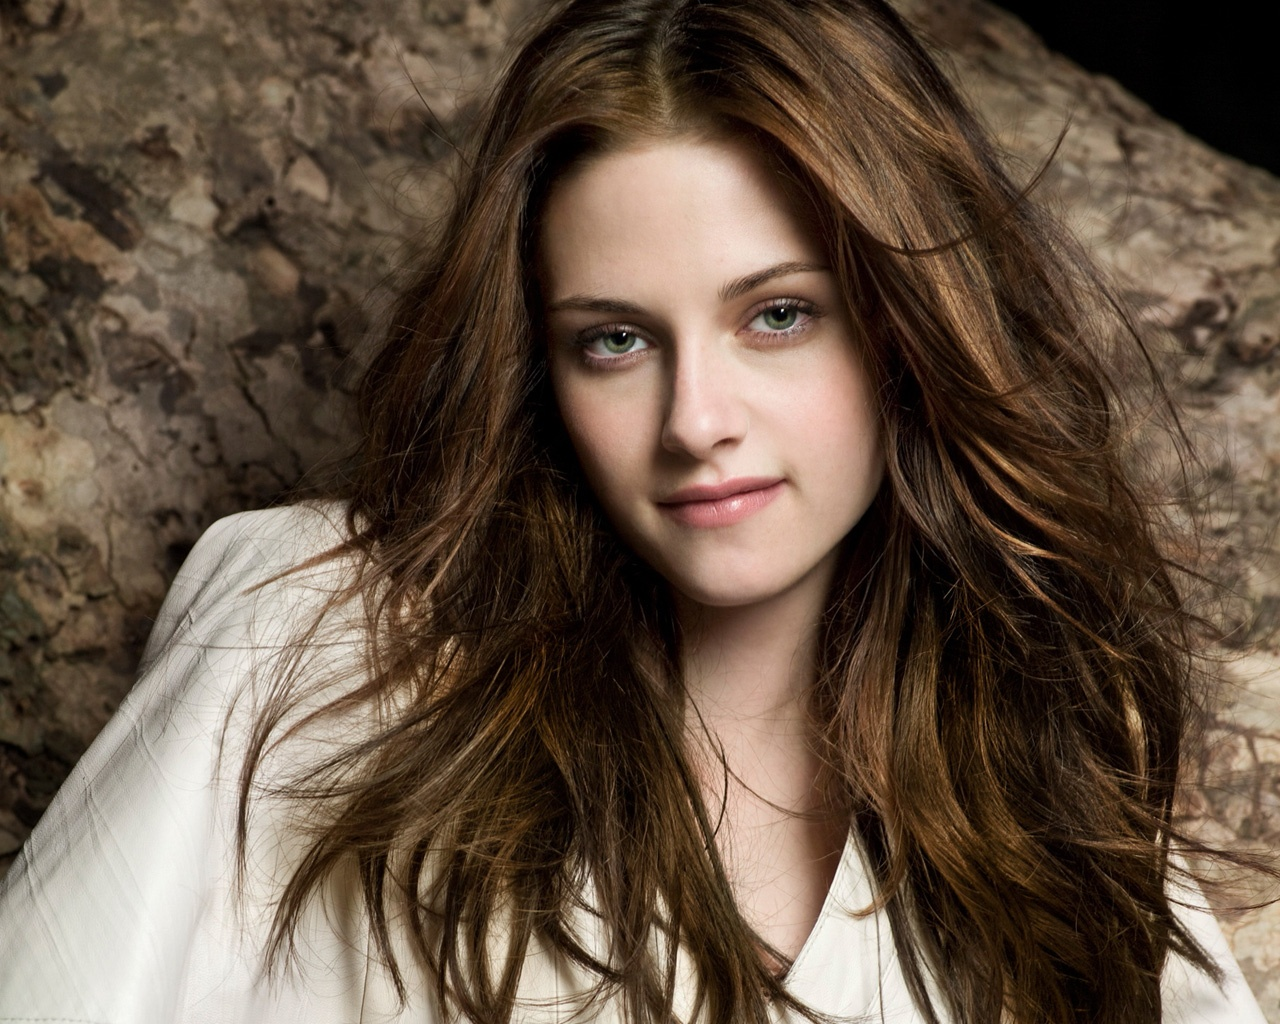 Wallpaper photo girl wallpapers for free download about 3253 kristen stewart twilight girl voltagebd